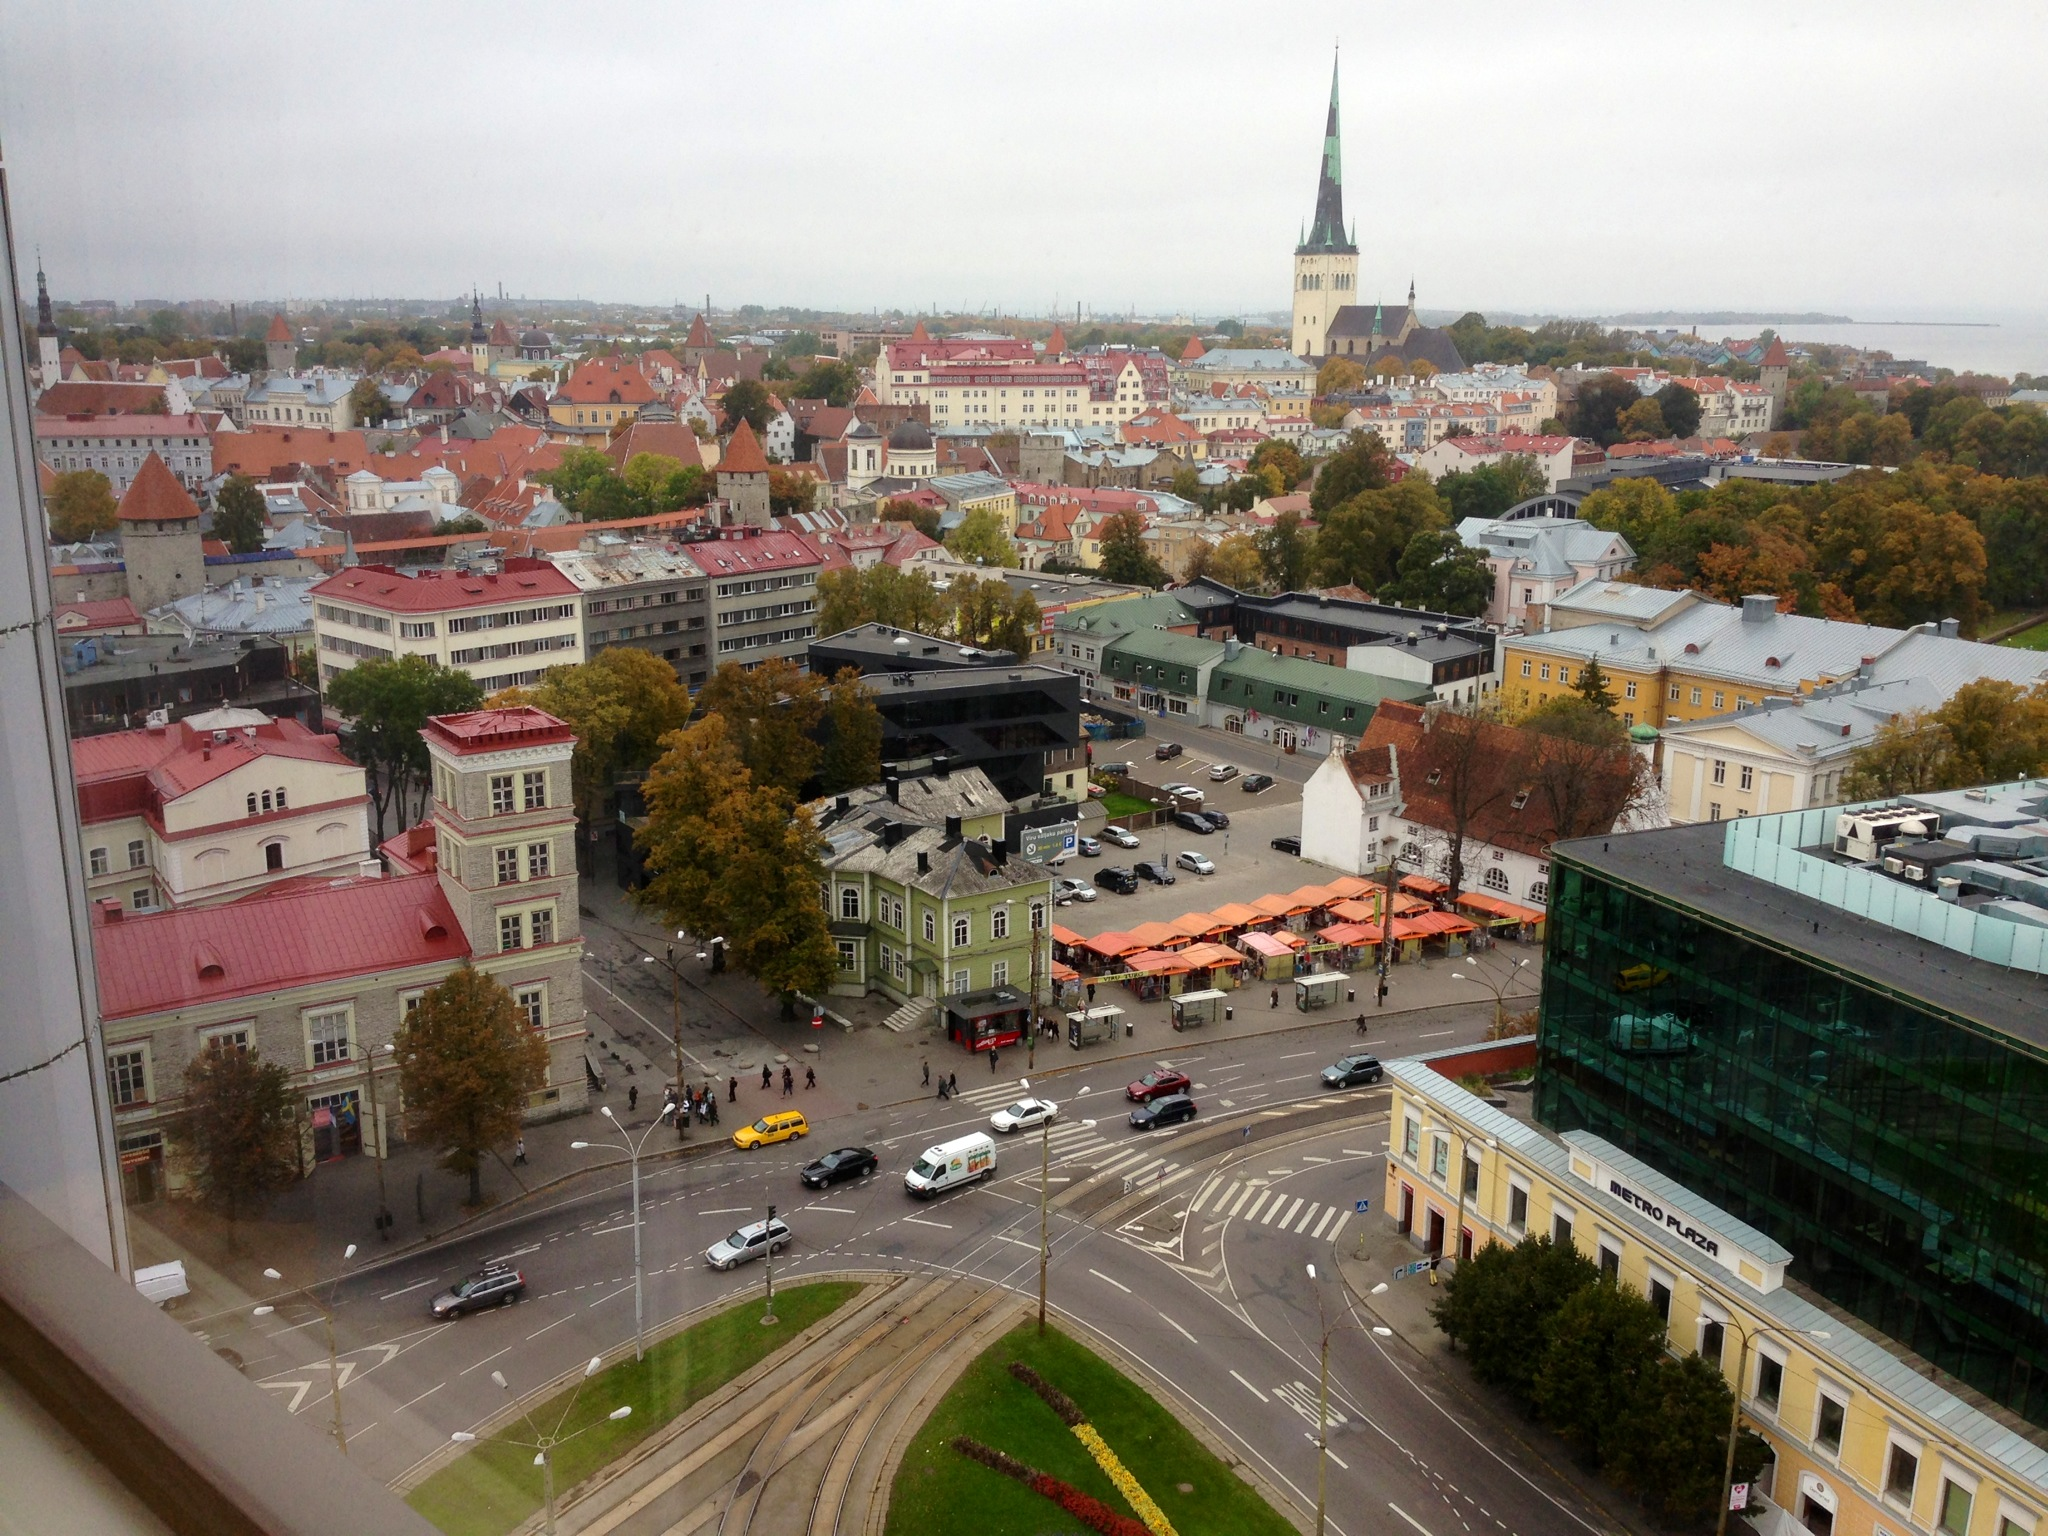 Our view of Tallinn from our room in the Viru Hotel